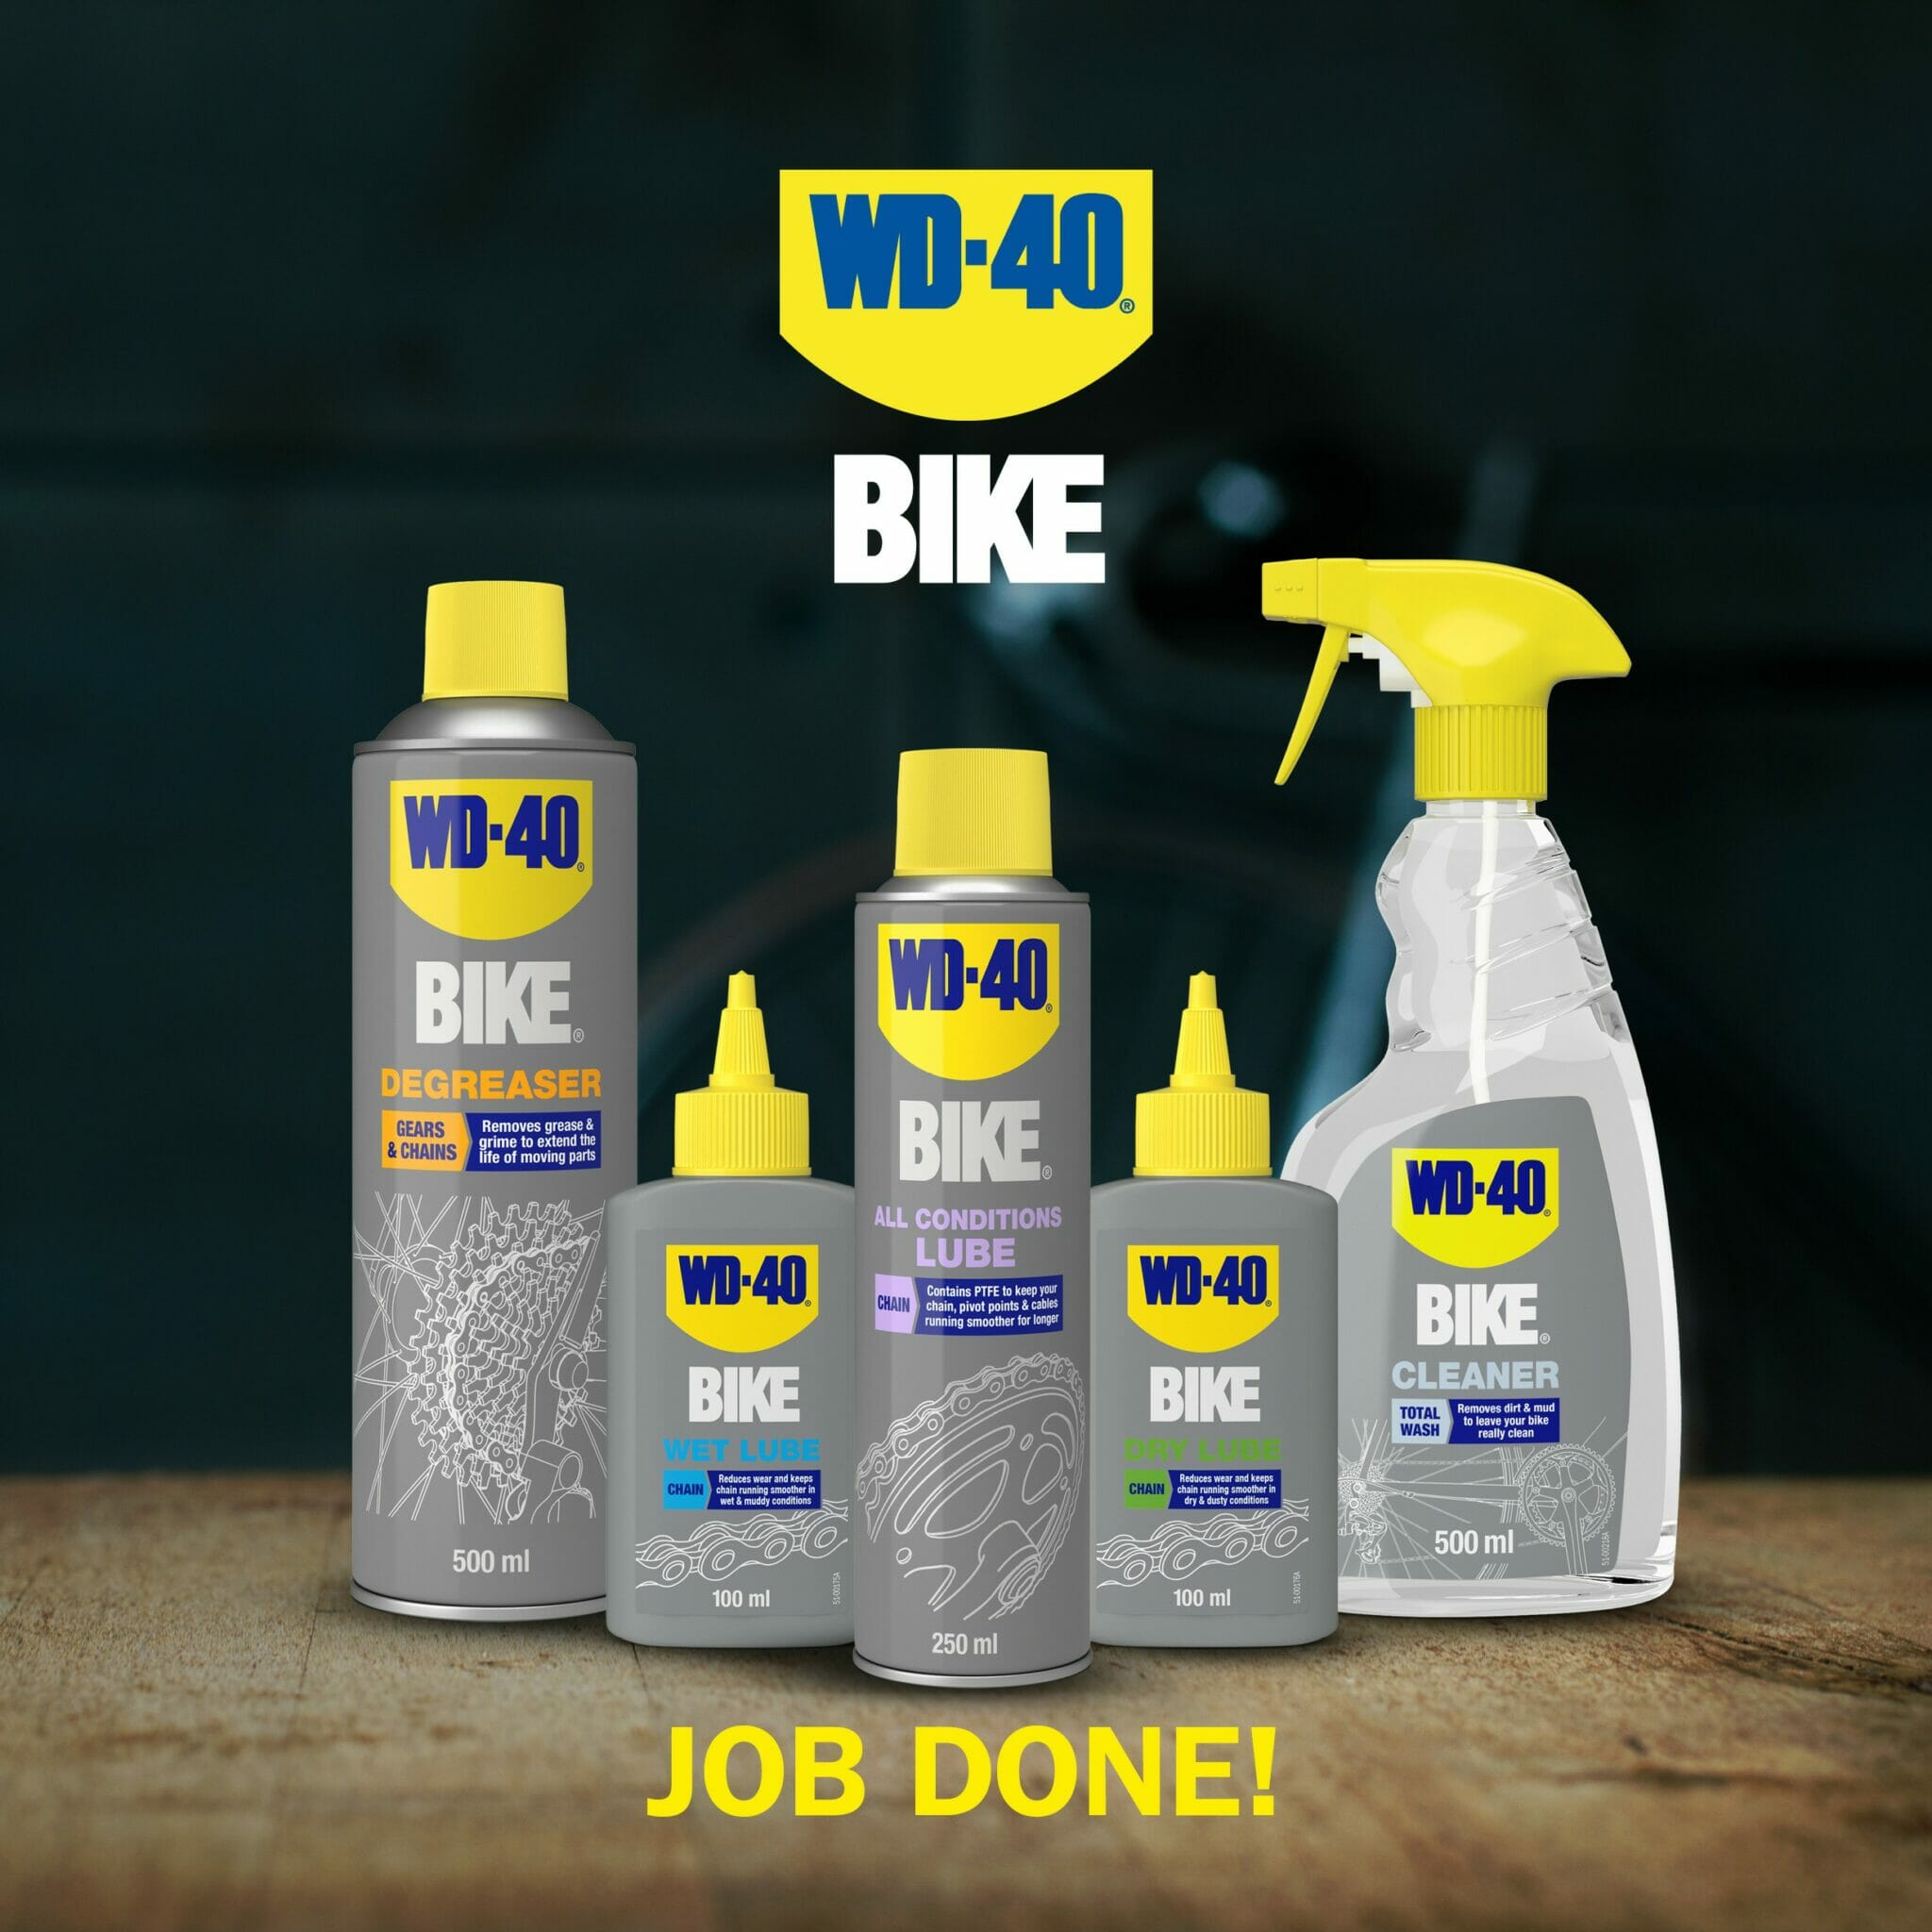 wd40 bike cleaner how to use part 9